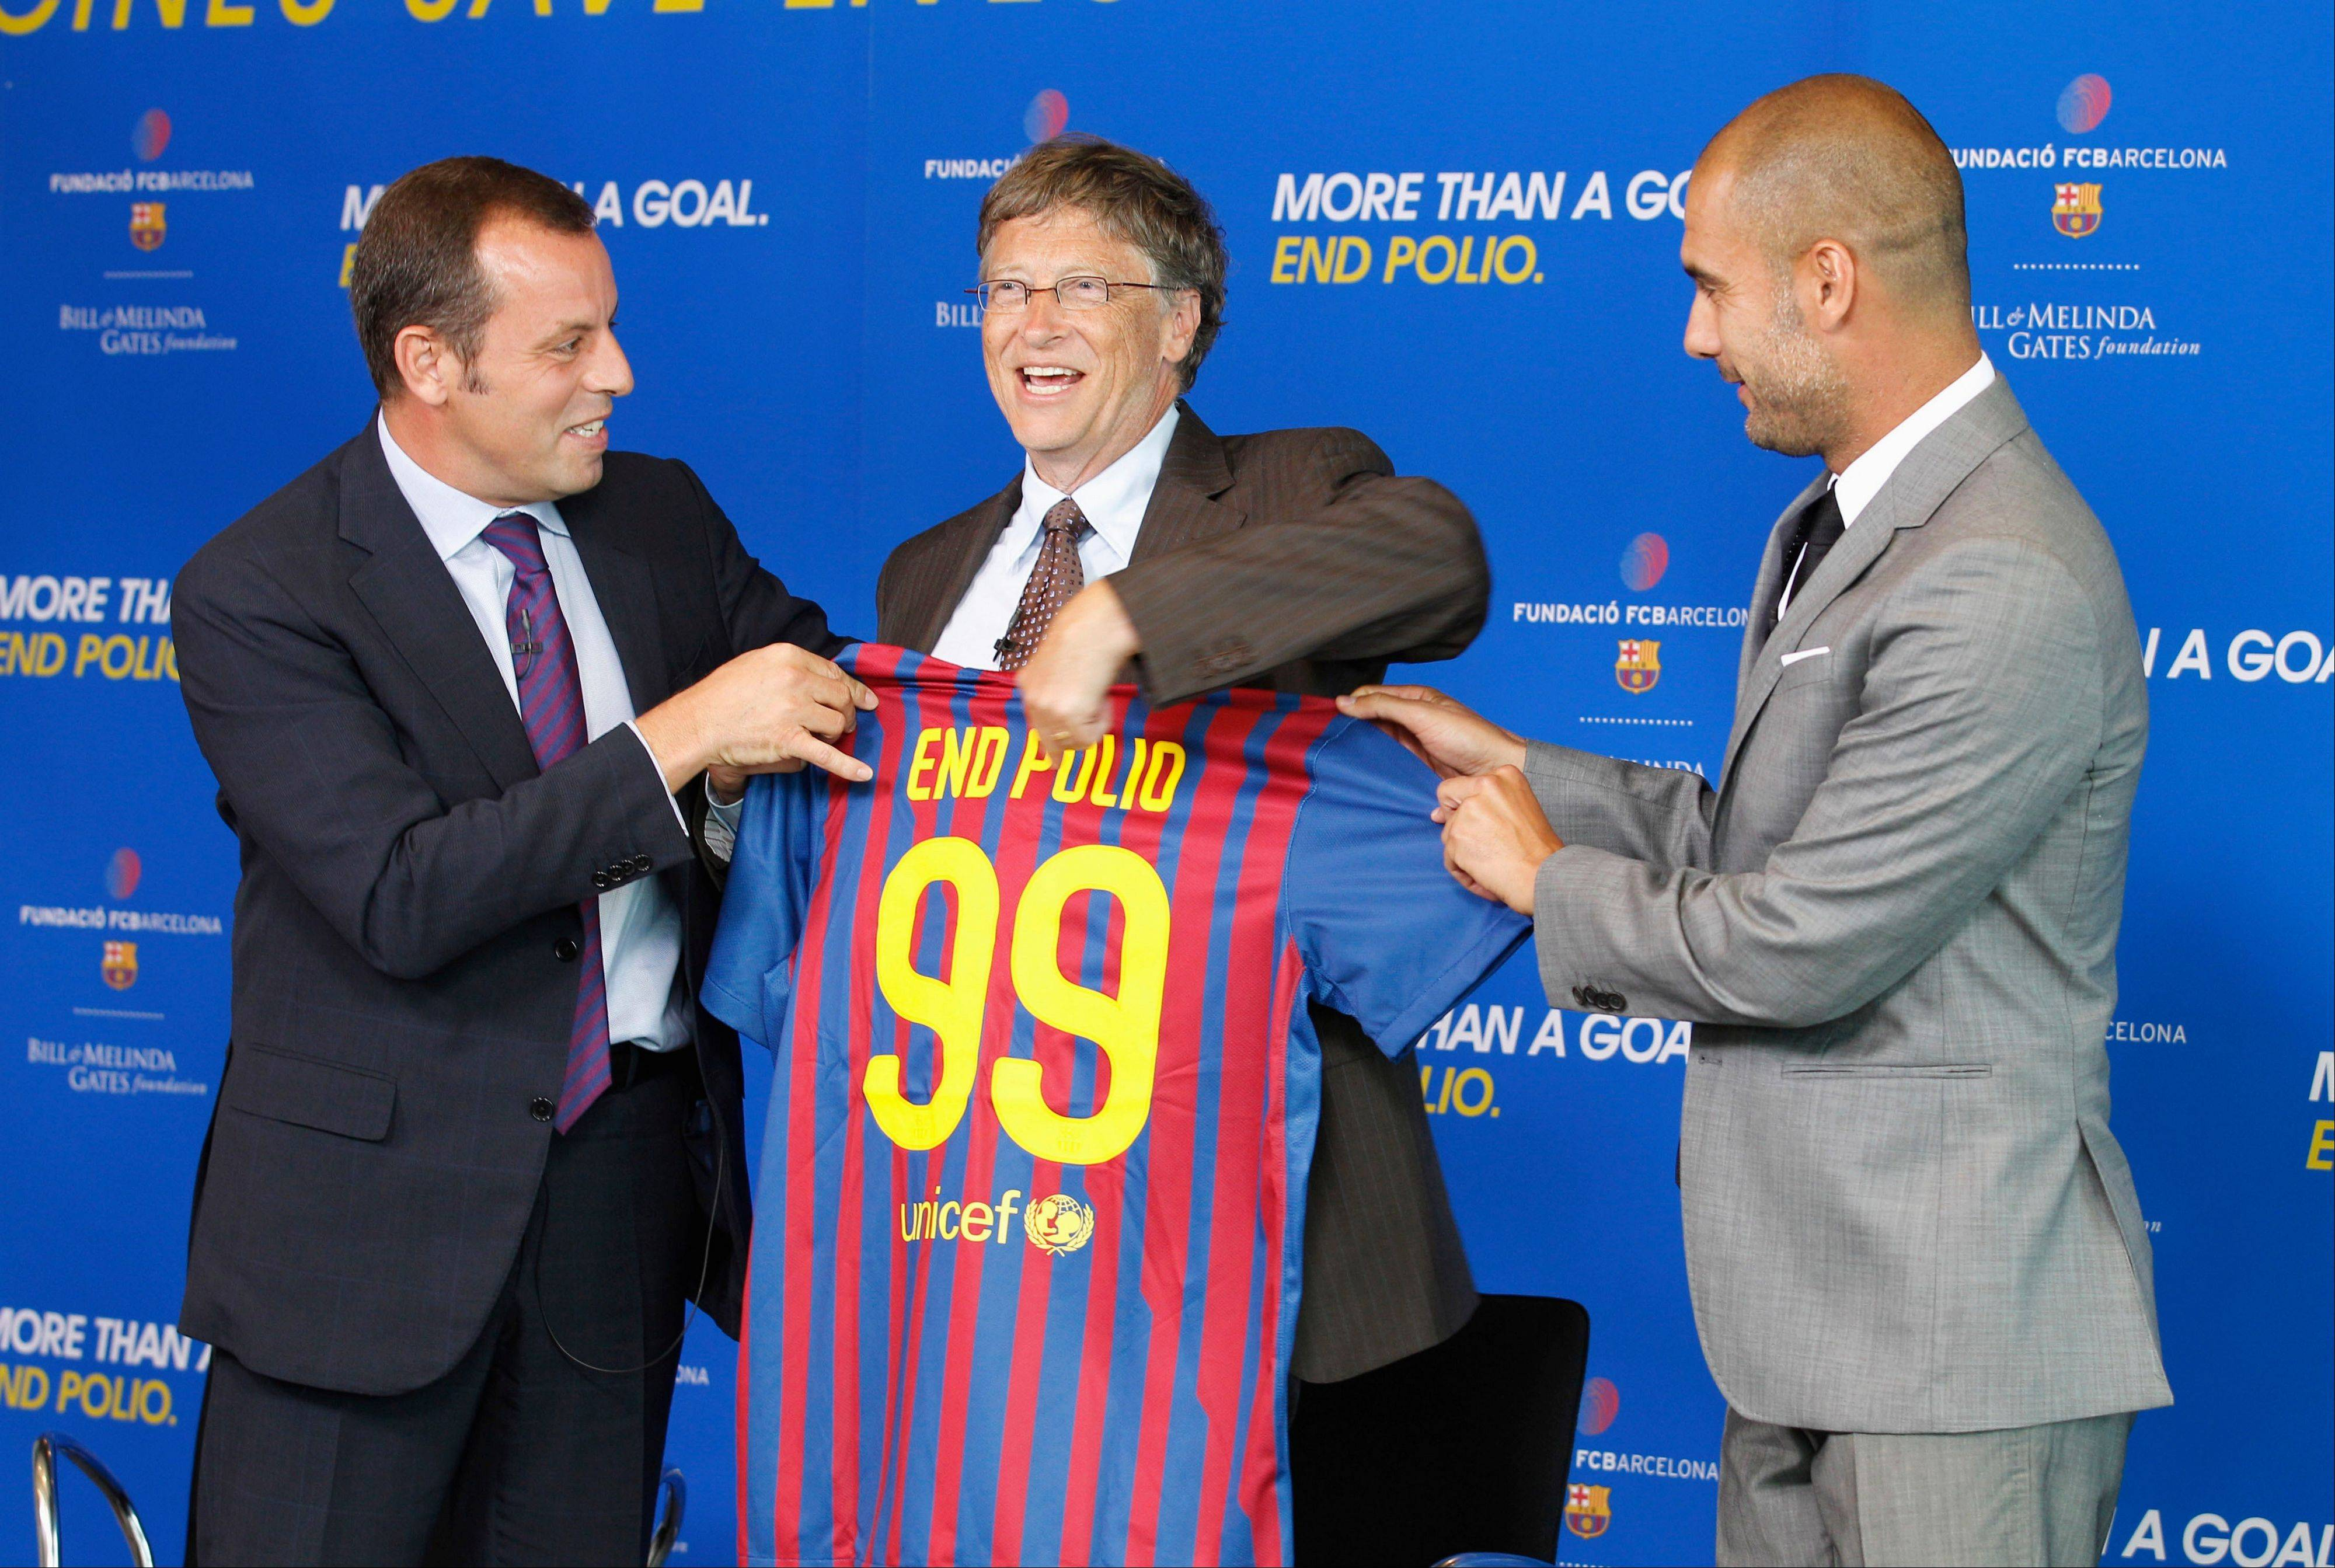 Bill Gates, co-chair of the Bill & Melinda Gates Foundation, center, with FC Barcelona President Sandro Rosell, left, and Barcelona coach Josep Guardiola, holds up a Barcelona jersey during announcement last week in Washington of a partnership between FC Barcelona and the Bill and Melinda Gates Foundation to End Polio and Give Every Child and Equal Shot at Life.